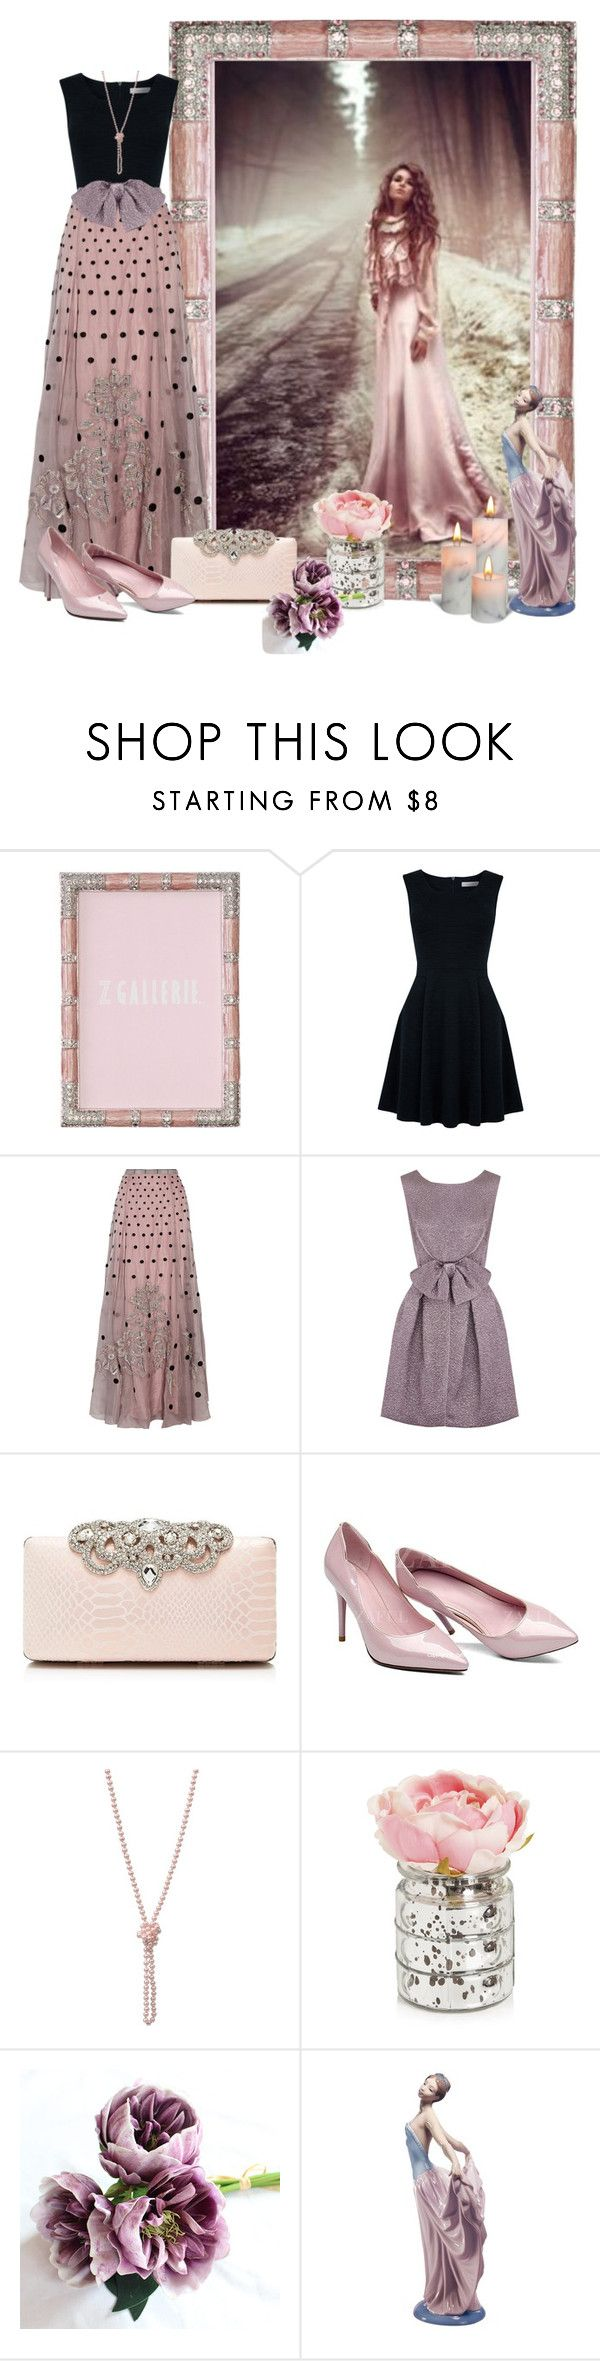 """""""SILK SKIRT"""" by concettodimoda ❤ liked on Polyvore featuring Quarto, Oasis, Temperley London, Nina Ricci, Forever New and Lladró"""